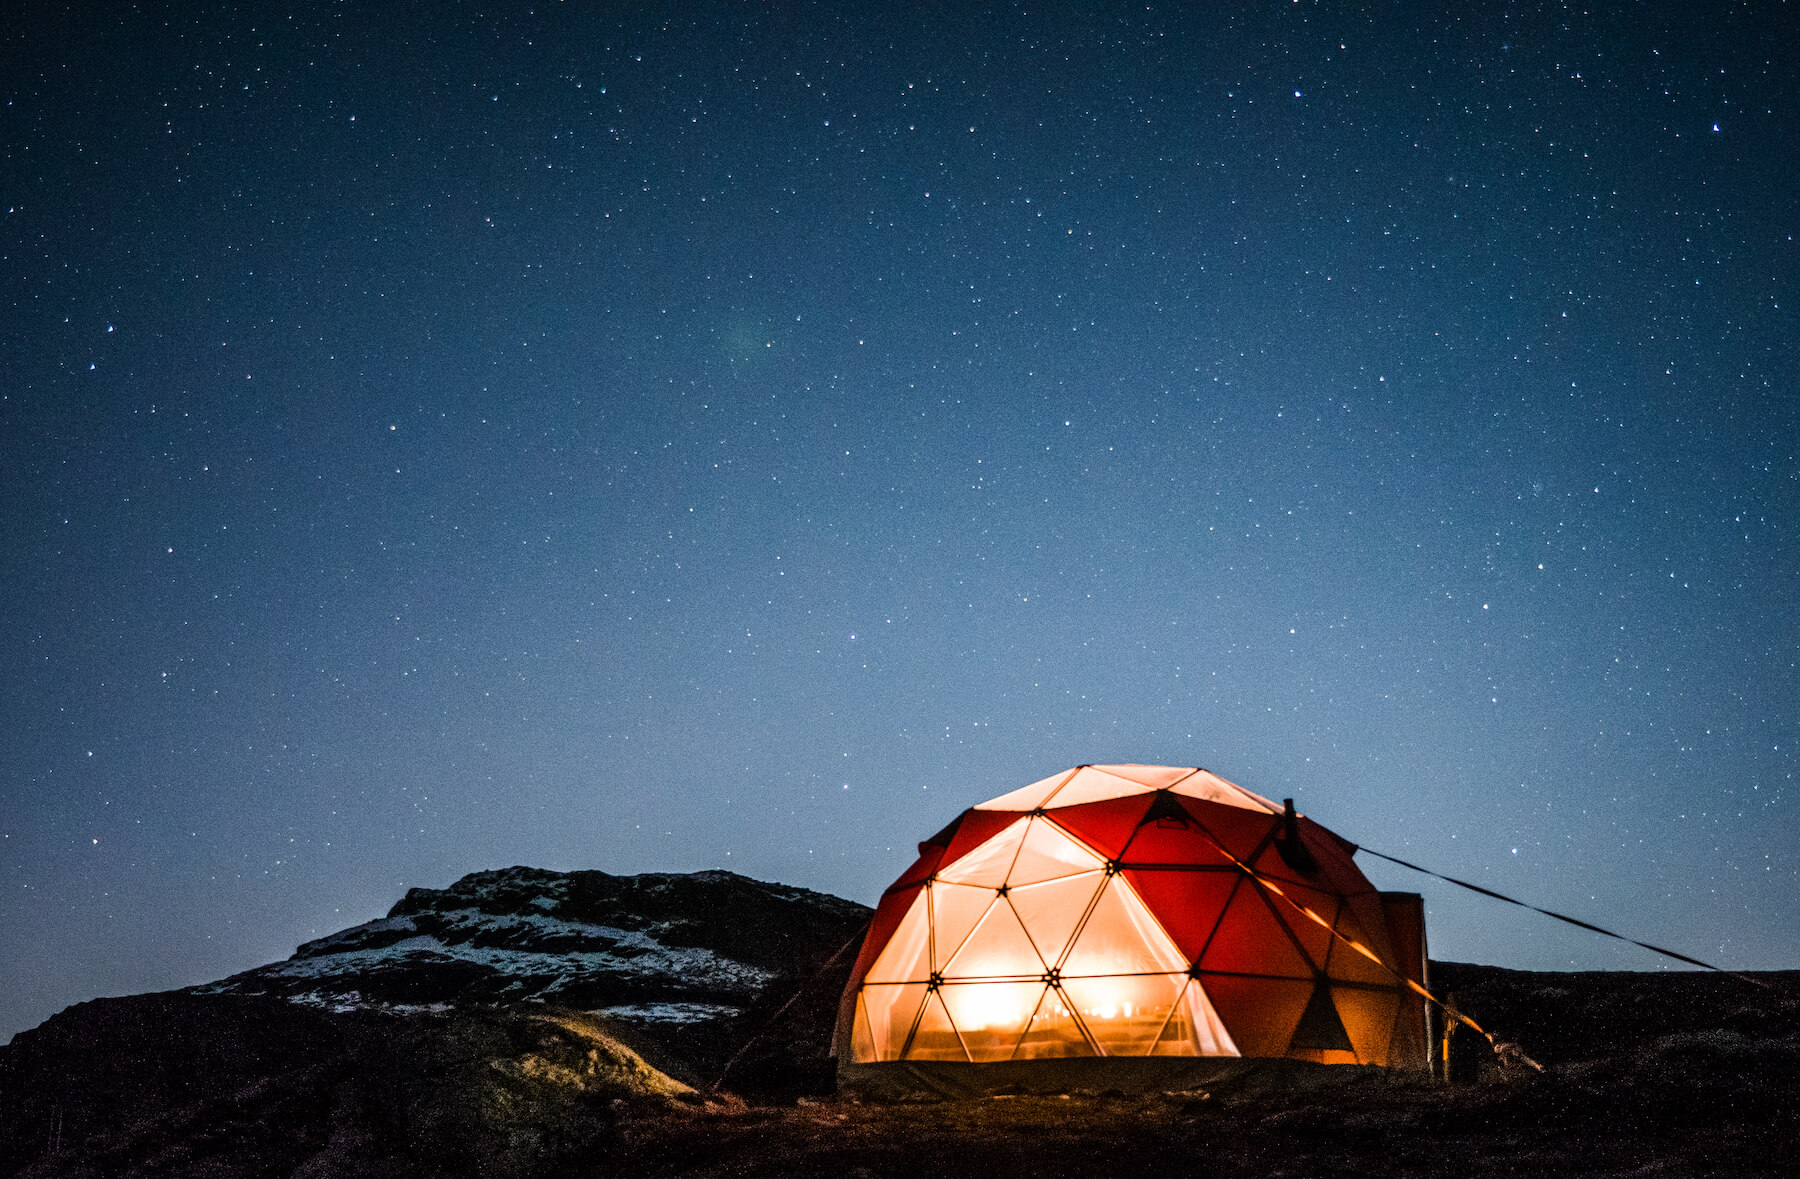 Trolltunga Sunset/Sunrise glamping Dome